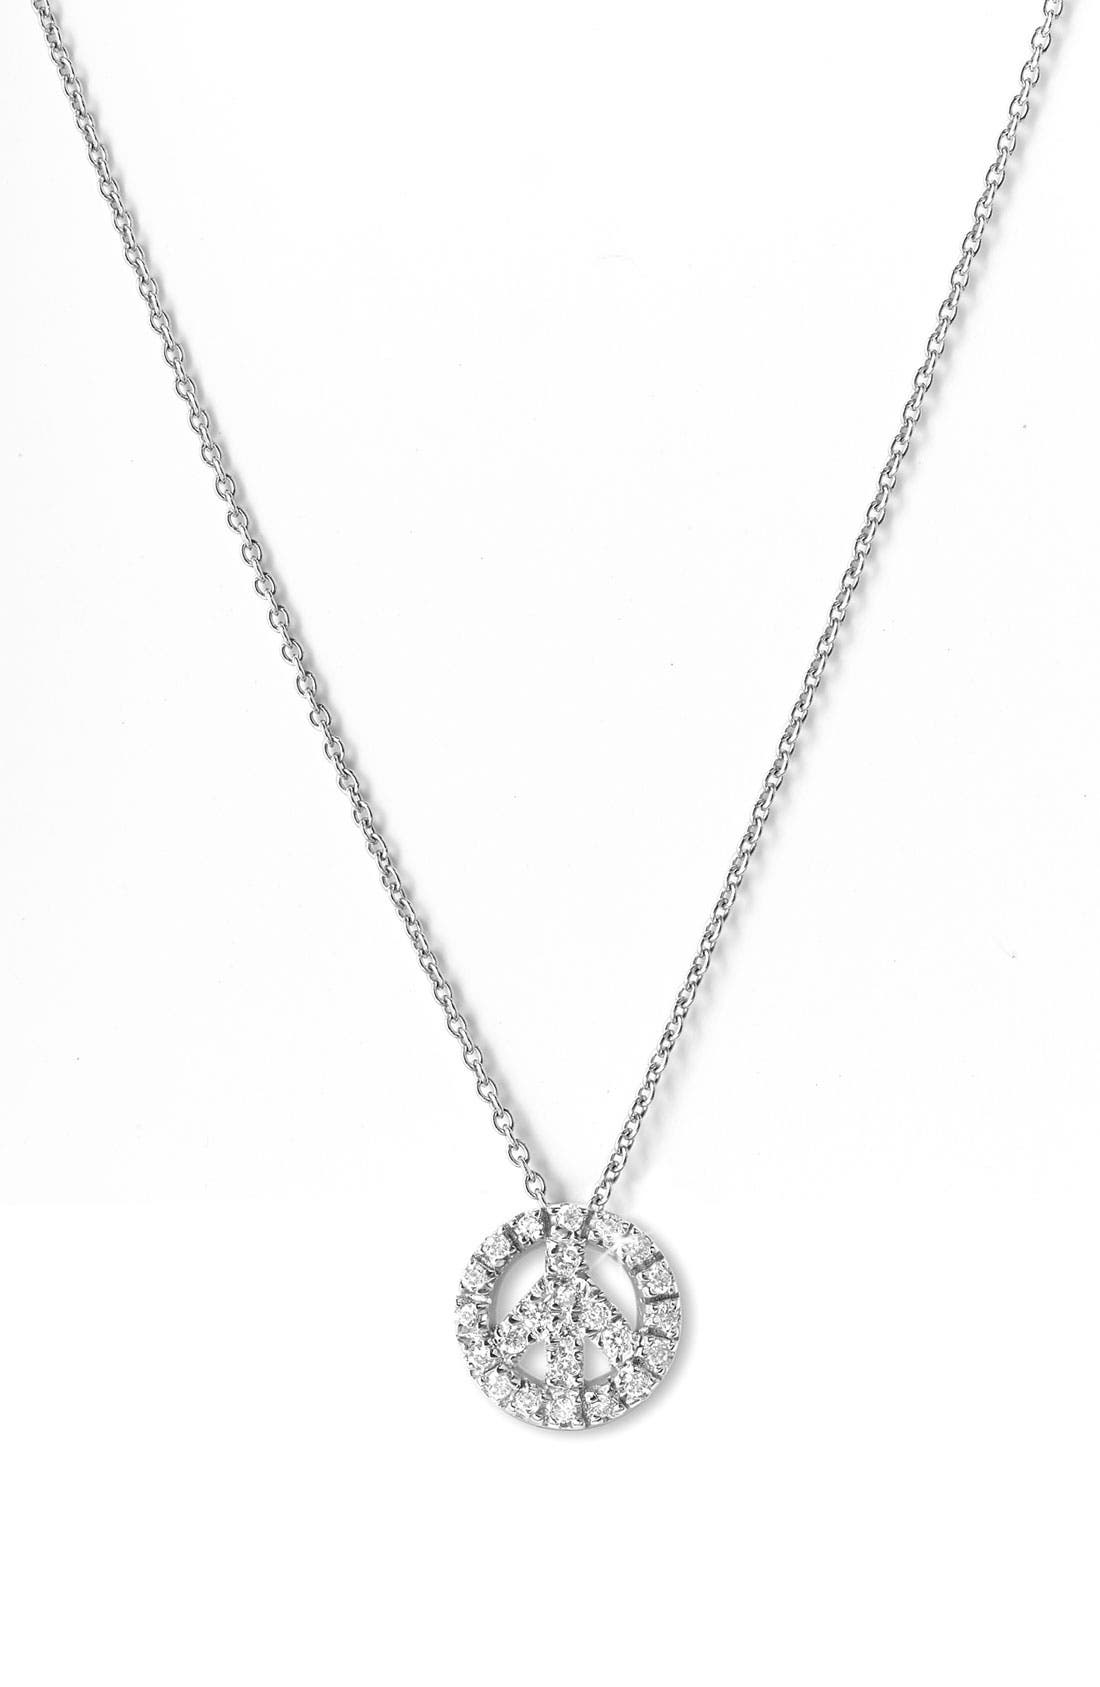 Alternate Image 1 Selected - Roberto Coin 'Tiny Treasures' Peace Sign Necklace